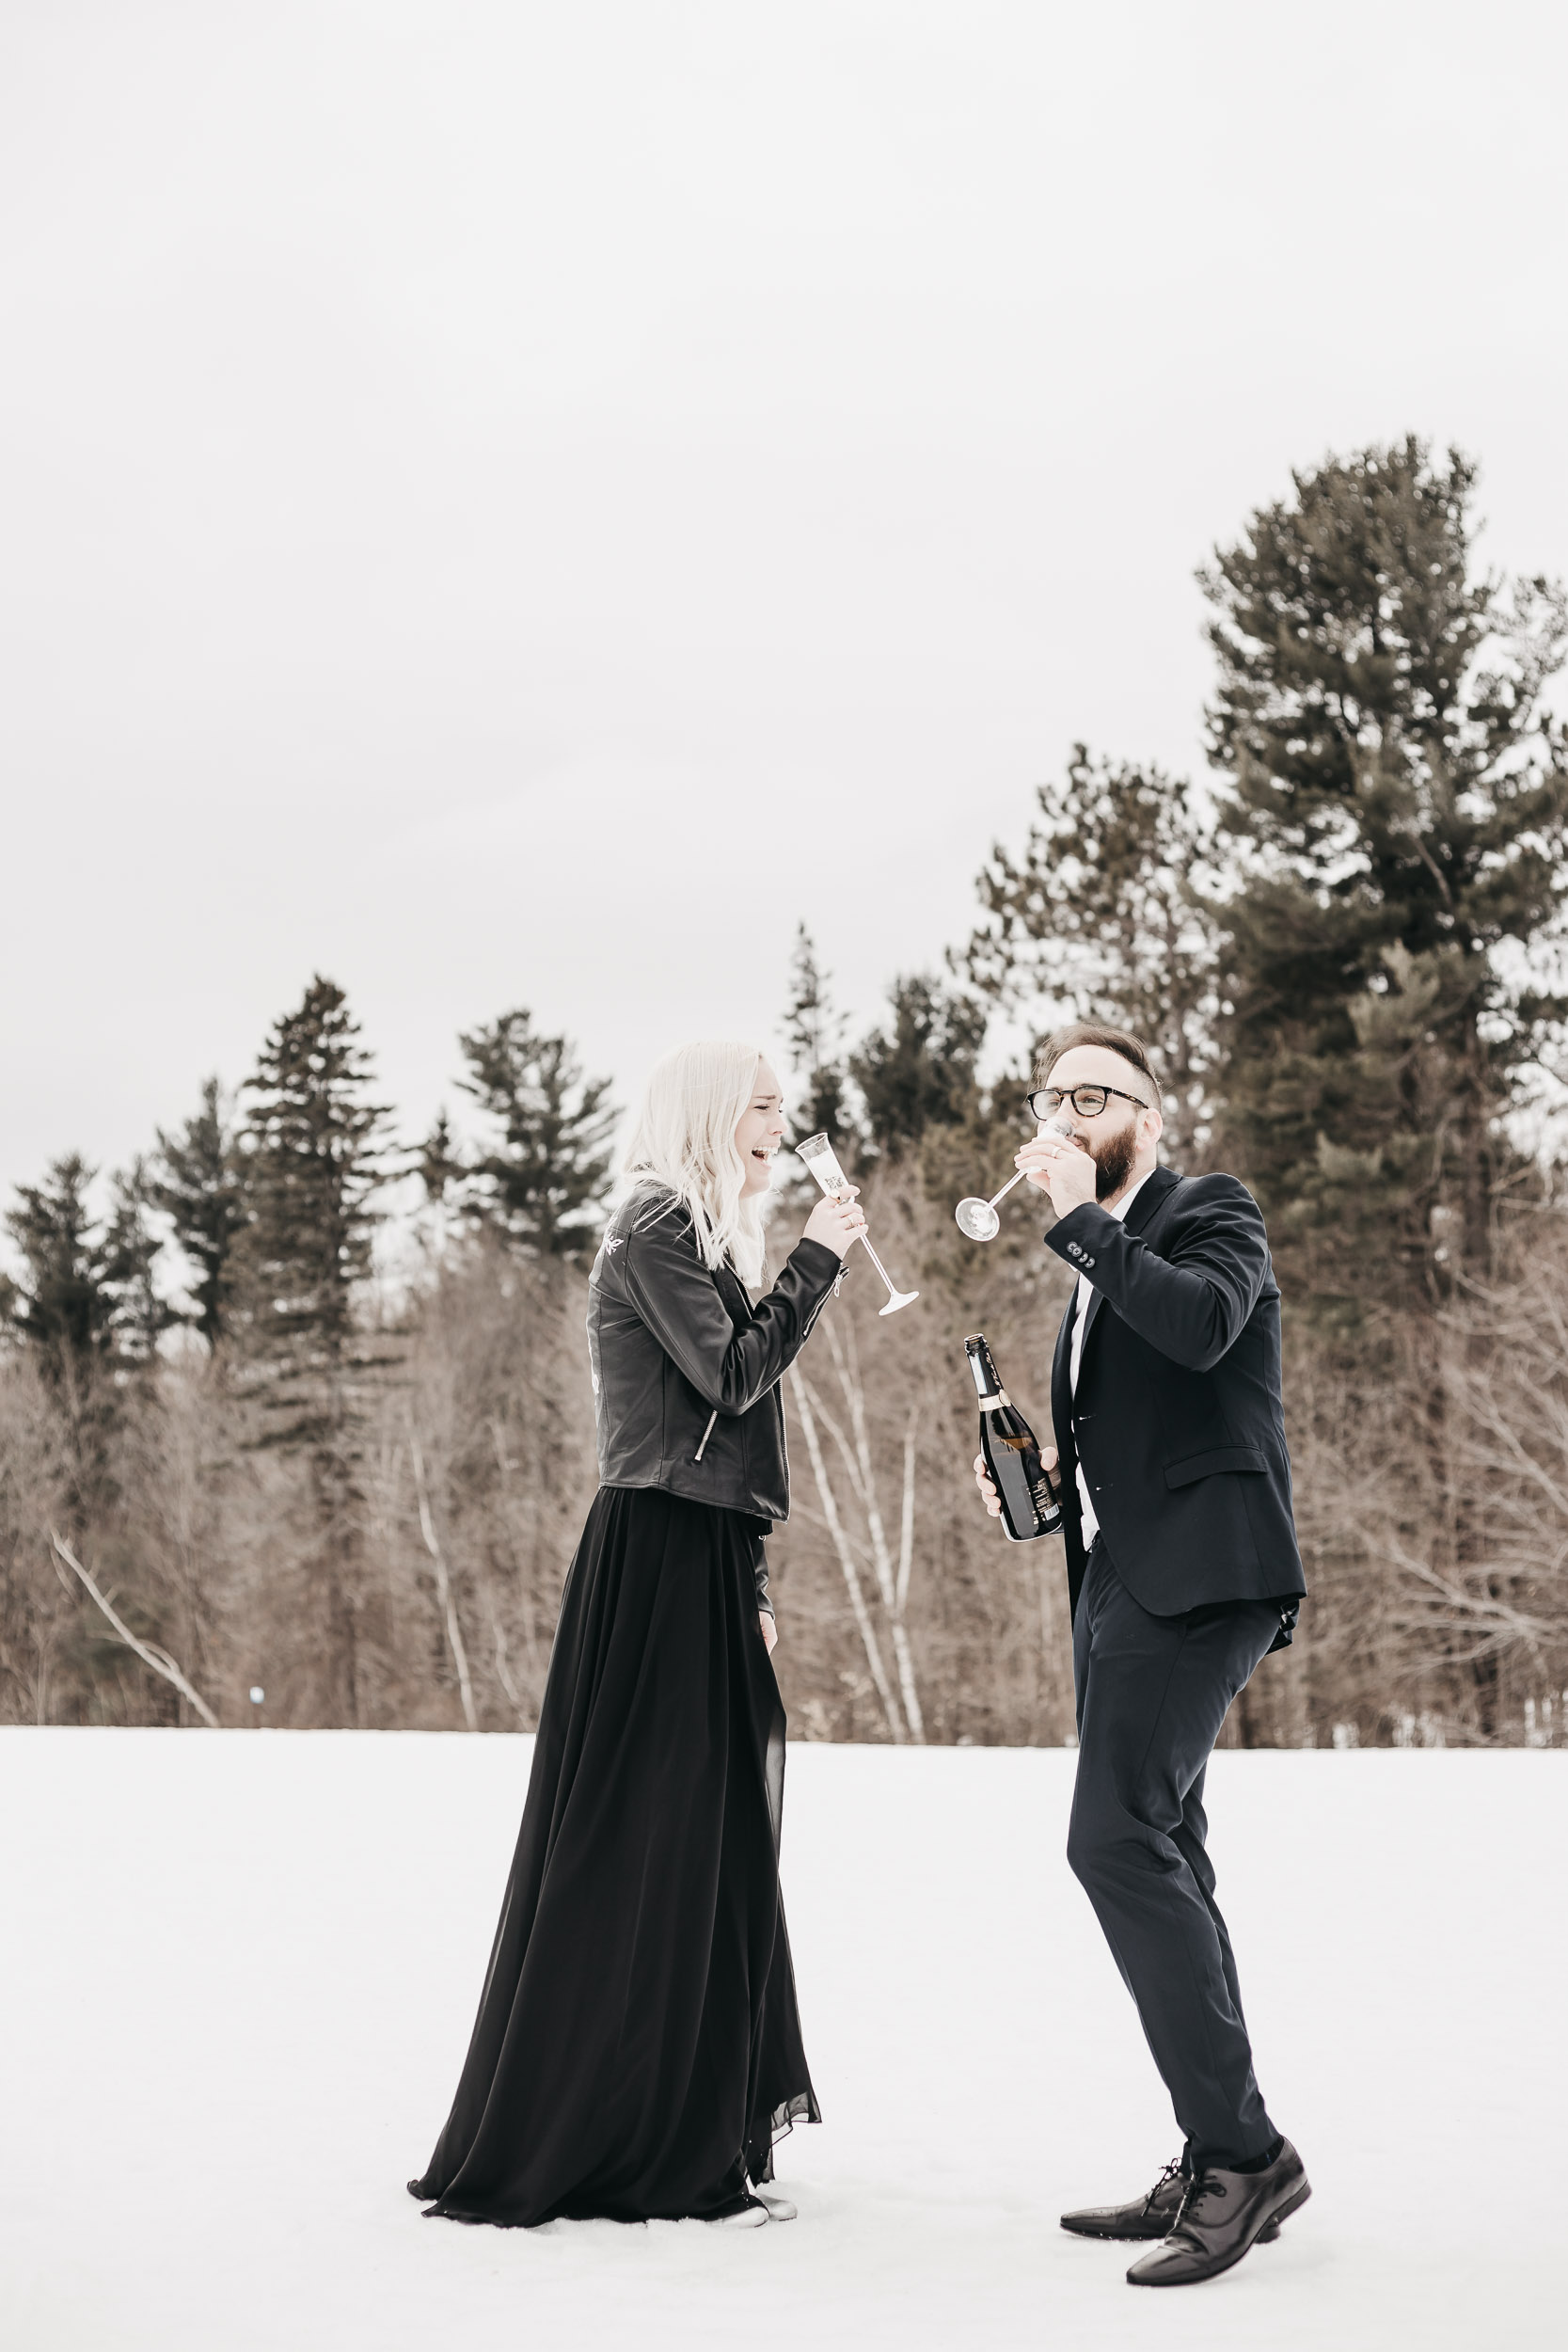 Ottawa-Elopement-Engagement-Photographer-102.jpg